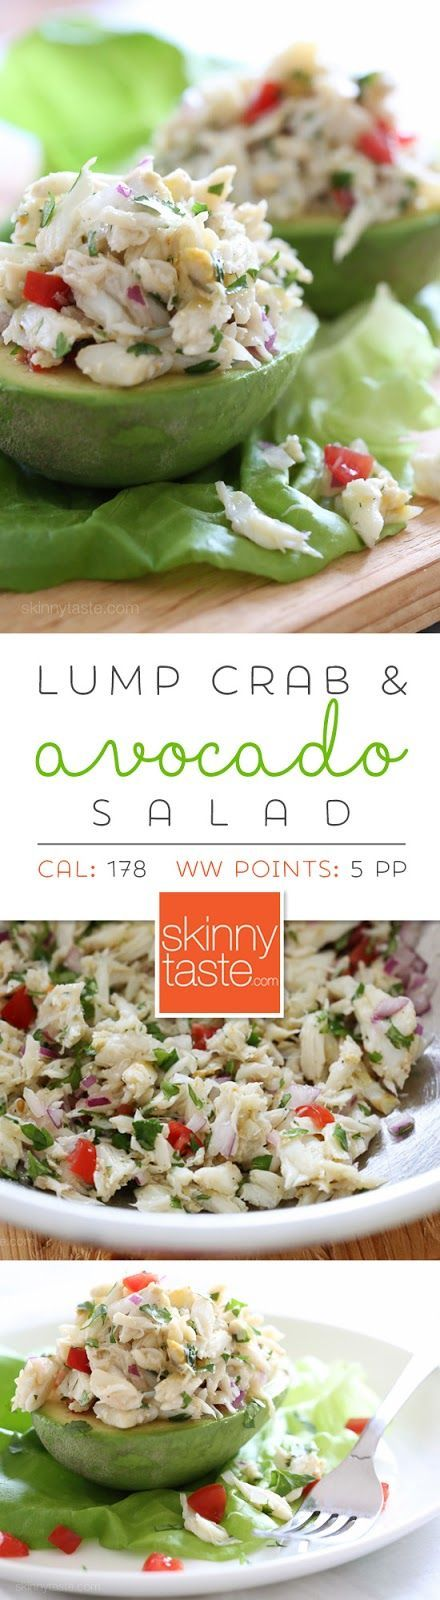 Avocado and Lump Crab Salad – avocado stuffed with a light, lump crab meat – the perfect summer low-carb salad!